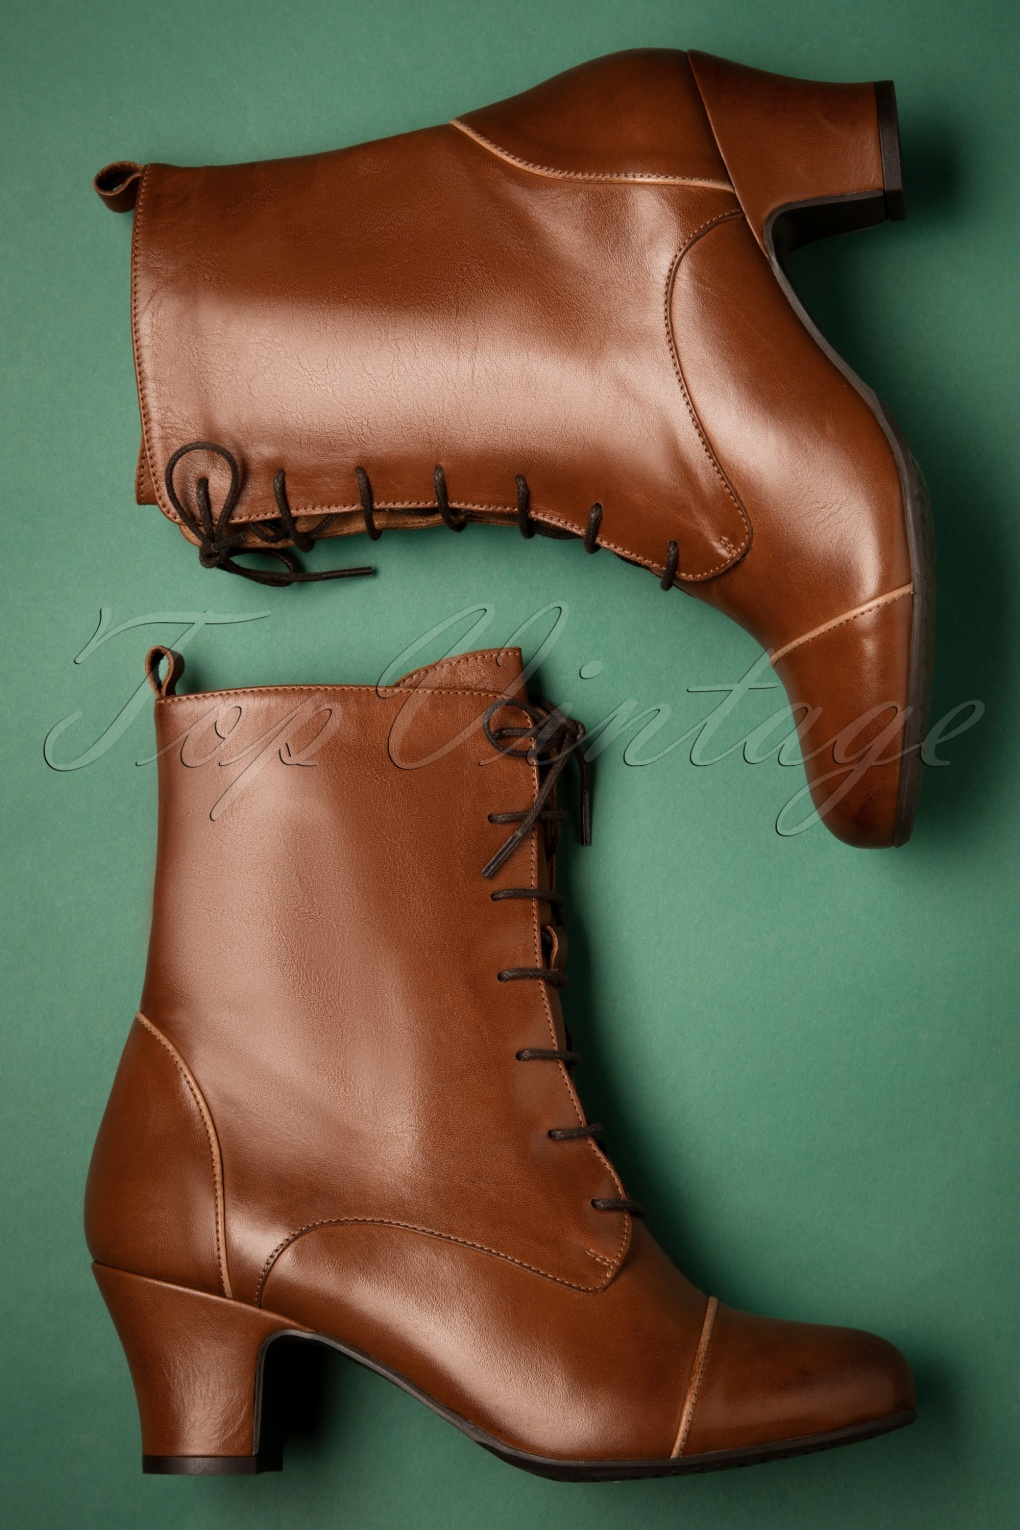 Vintage Boots- Buy Winter Retro Boots 40s Fabian Leather Ankle Booties in Brandy £144.84 AT vintagedancer.com